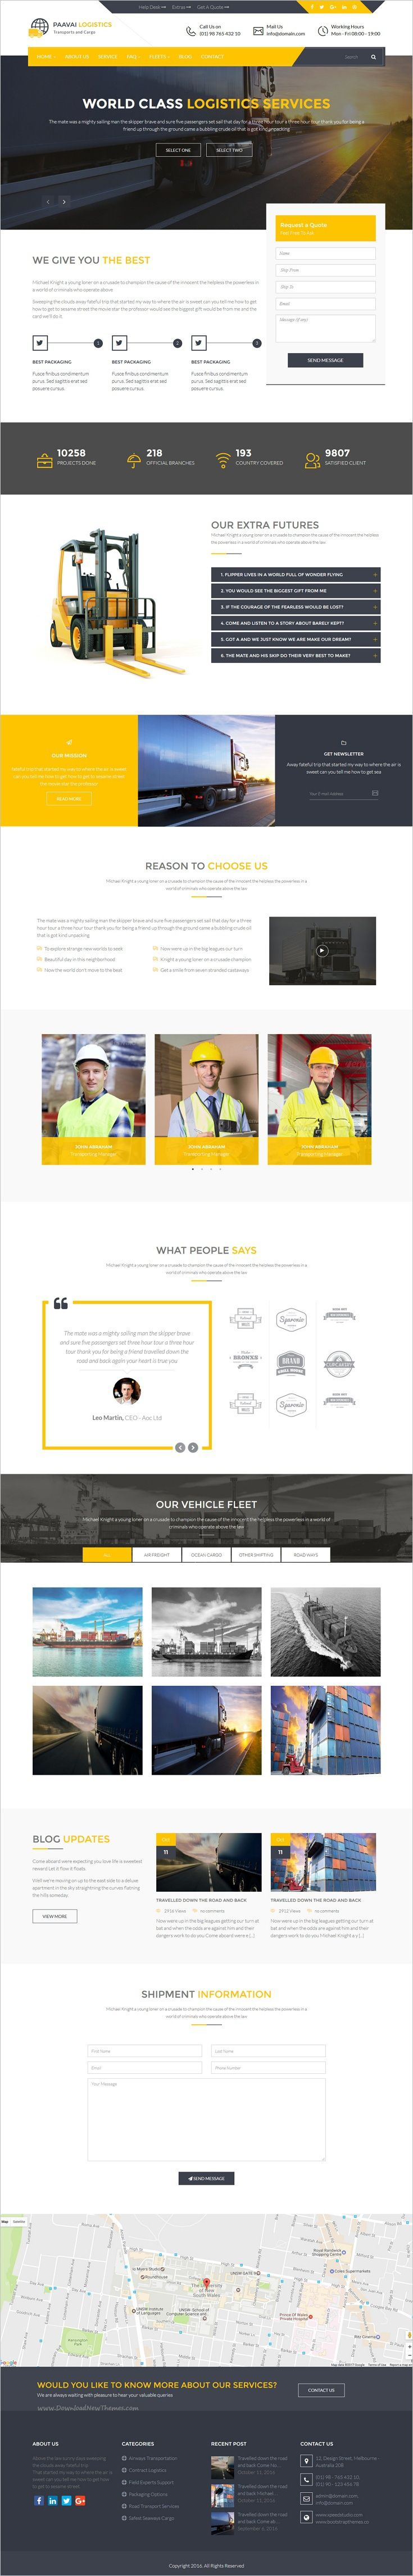 Paavai Logistics is a fresh and unique 3in1 #WordPress Theme designed for #Logistics, Cargo and Movers Company websites download now➩ https://themeforest.net/item/paavai-logistics-transport-and-cargo-wordpress-theme/18740617?ref=Datasata